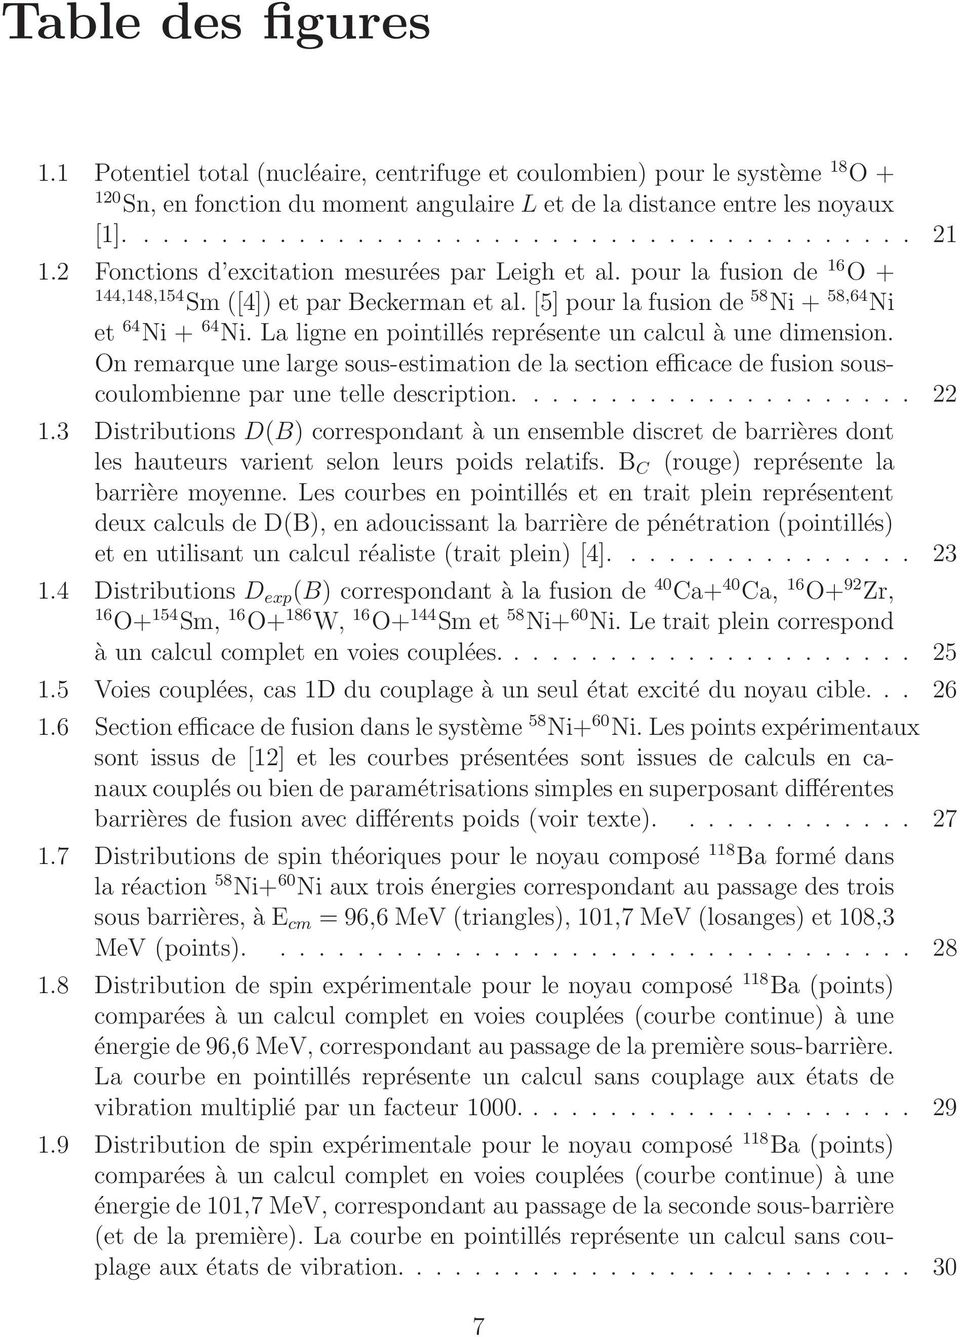 La ligne en pointillés représente un calcul àunedimension. On remarque une large sous-estimation de la section efficace de fusion souscoulombienne par une telle description..................... 22 1.